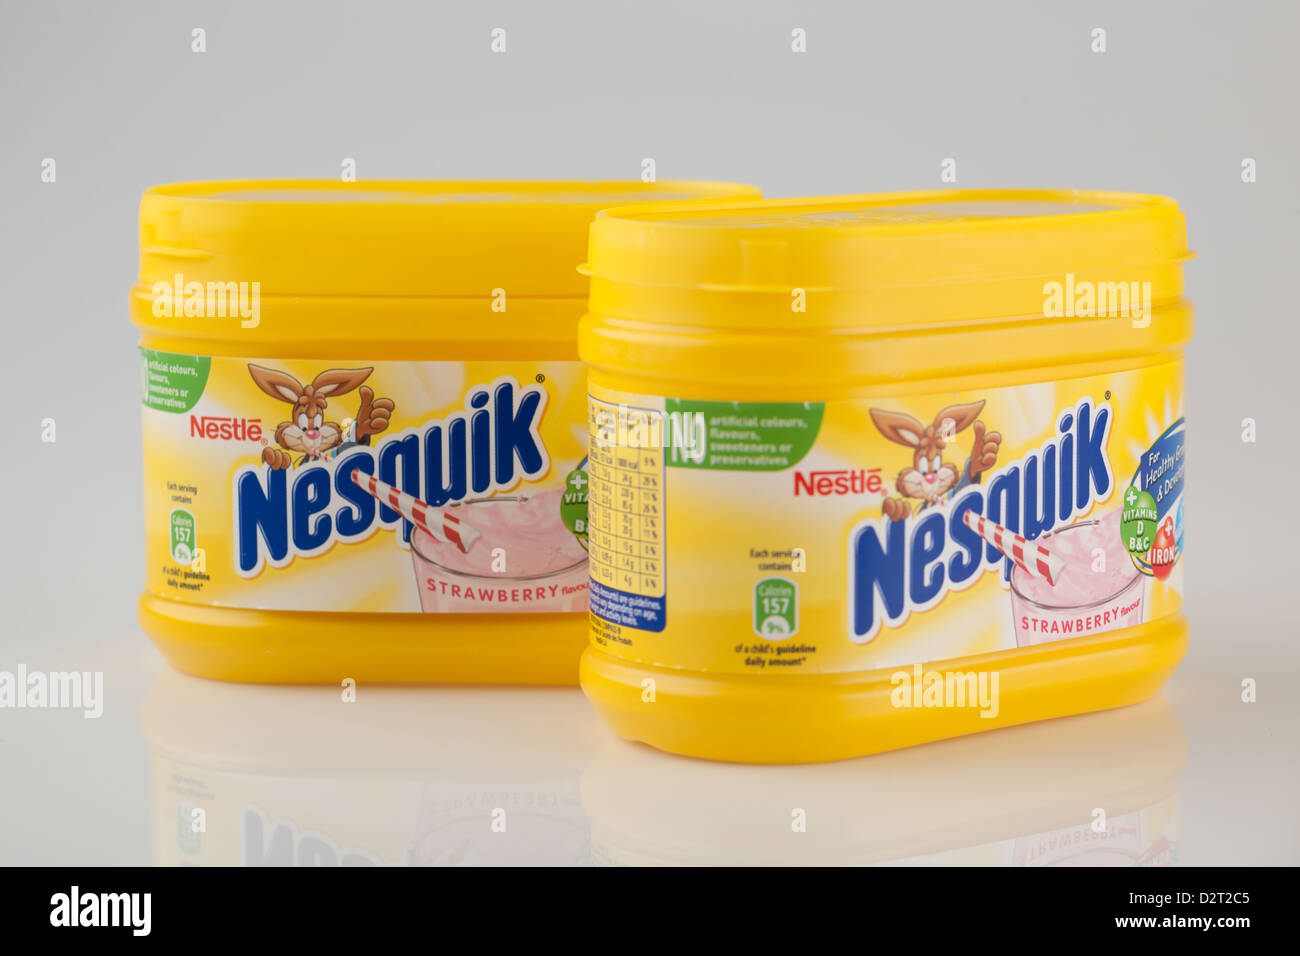 Two containers of Nestle Strawberry flavour Nesquick milkshake mix - Stock Image